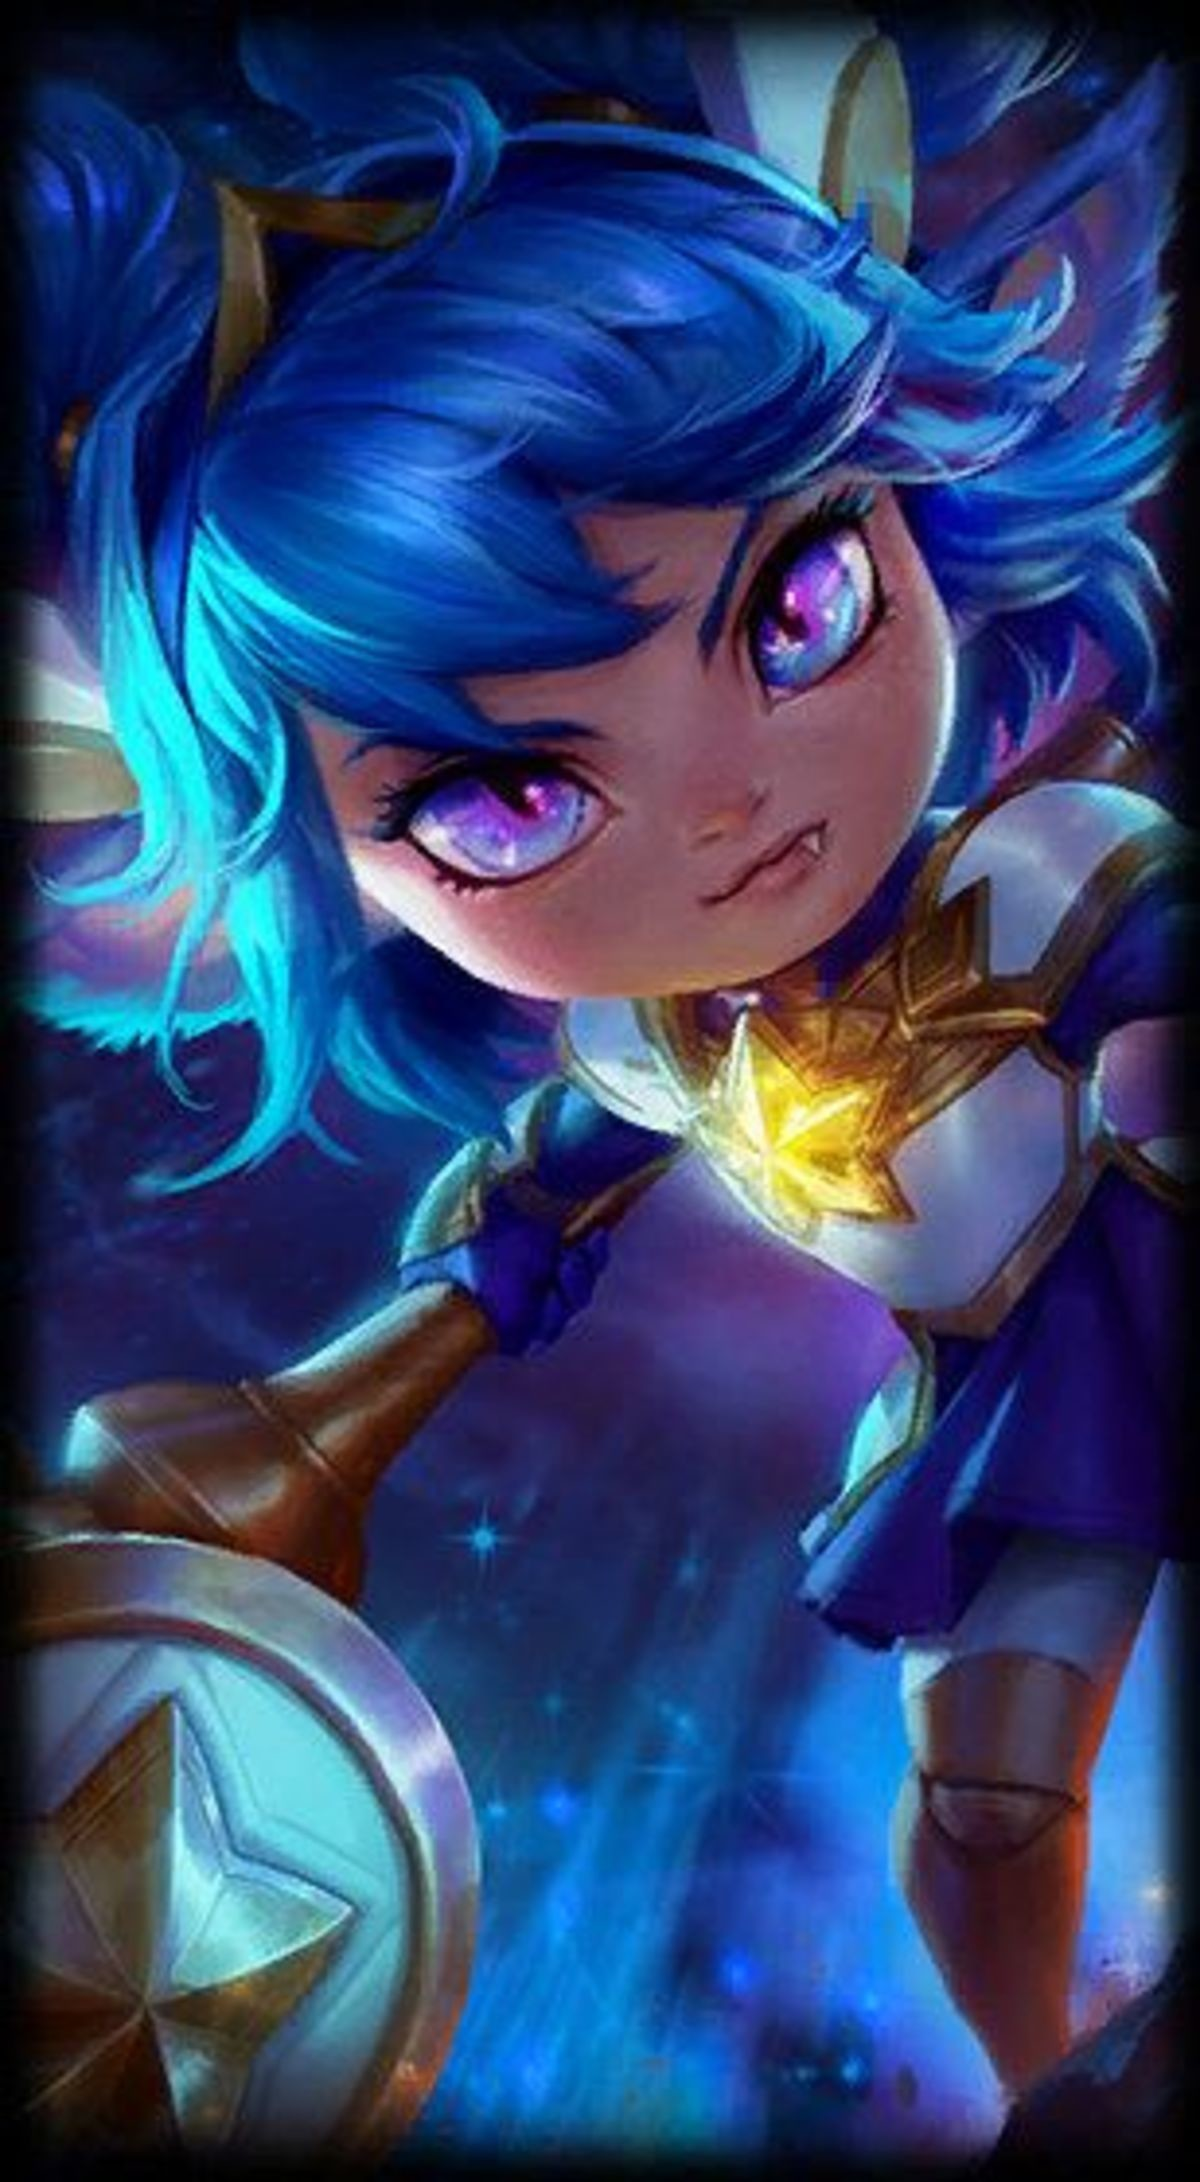 Star Guardian. .. Did you just post the loading screen frame. Why? For what purpose why not the whole splash in better quality